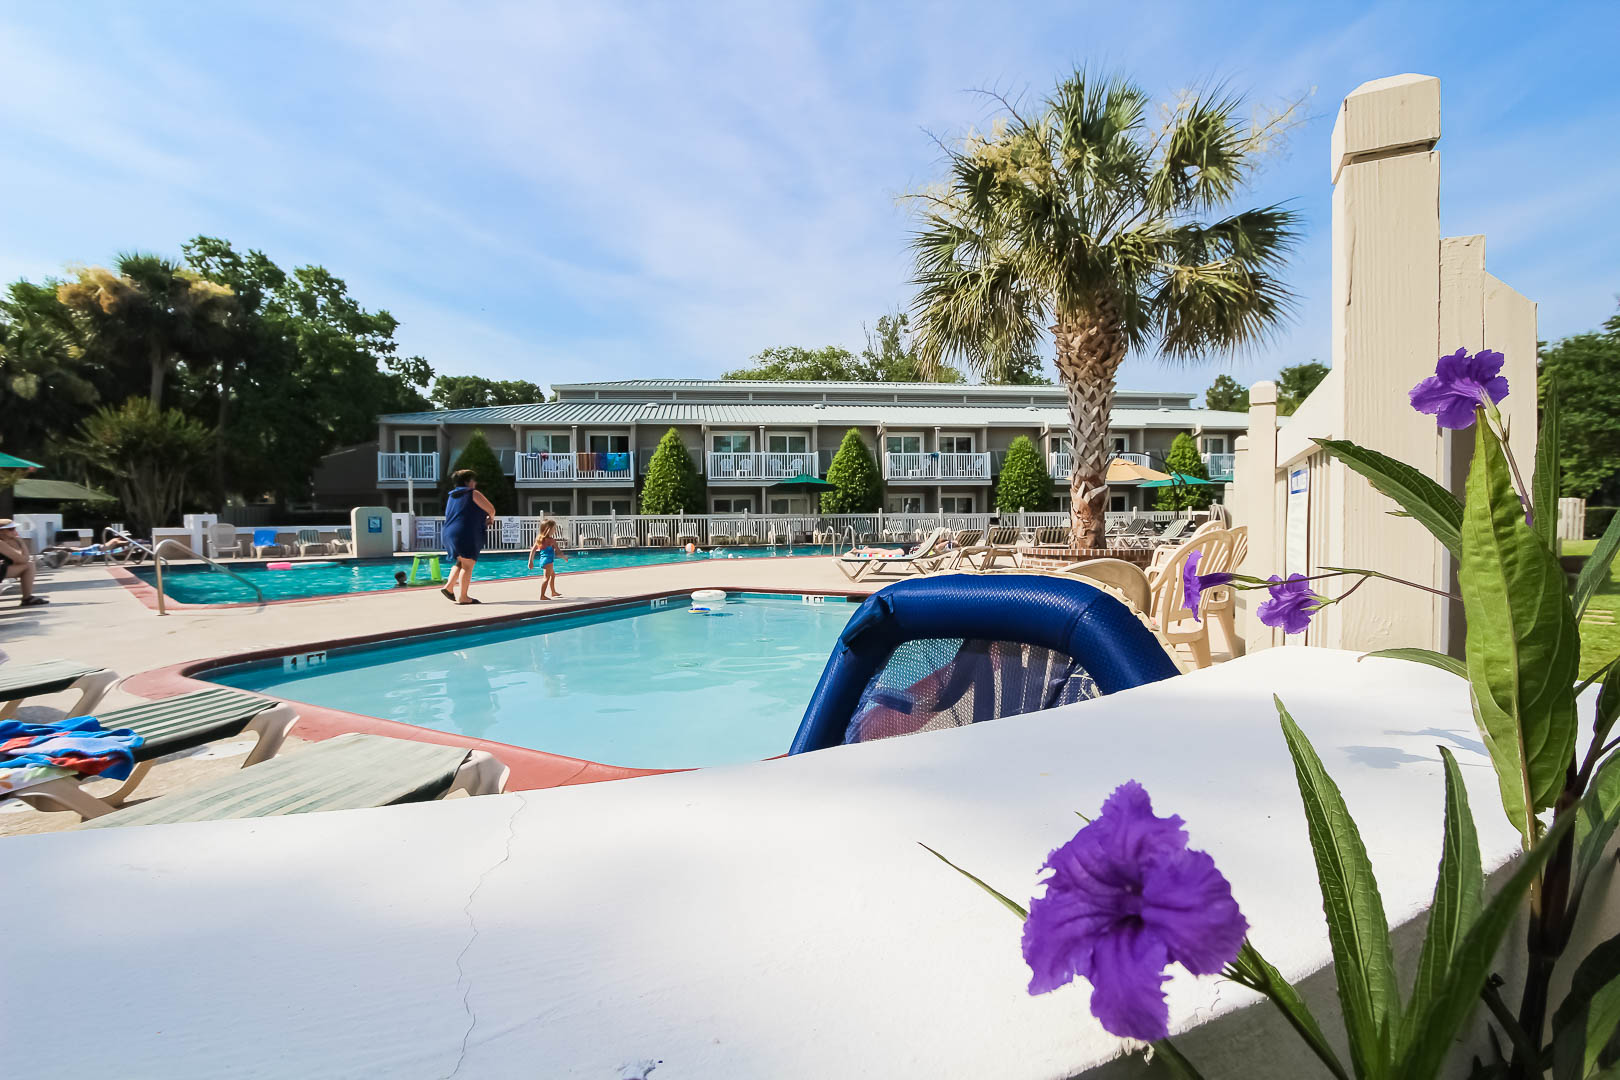 A peaceful view of the outdoor swimming pool at VRI's Players Club Resort in Hilton Head Island, South Carolina.